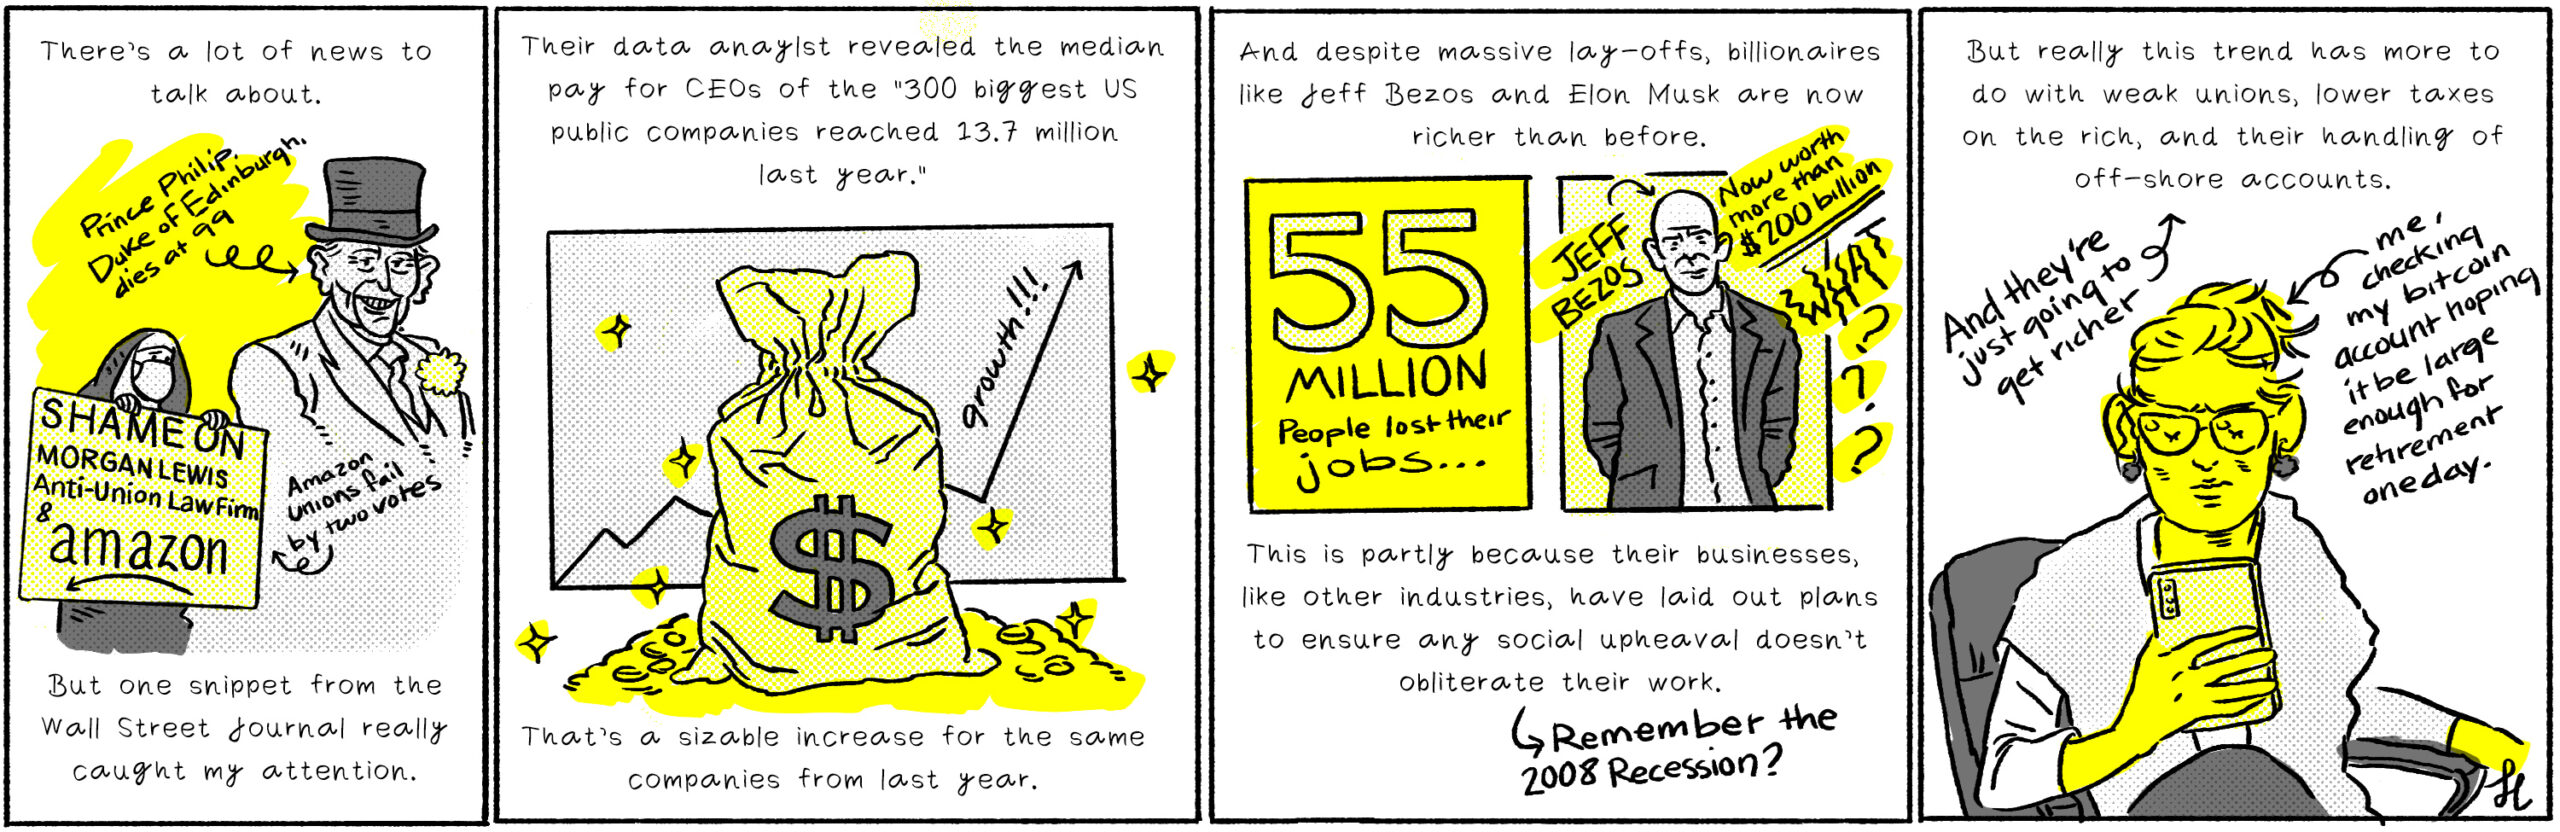 The mega-wealthy are only getting richer—Cartoon